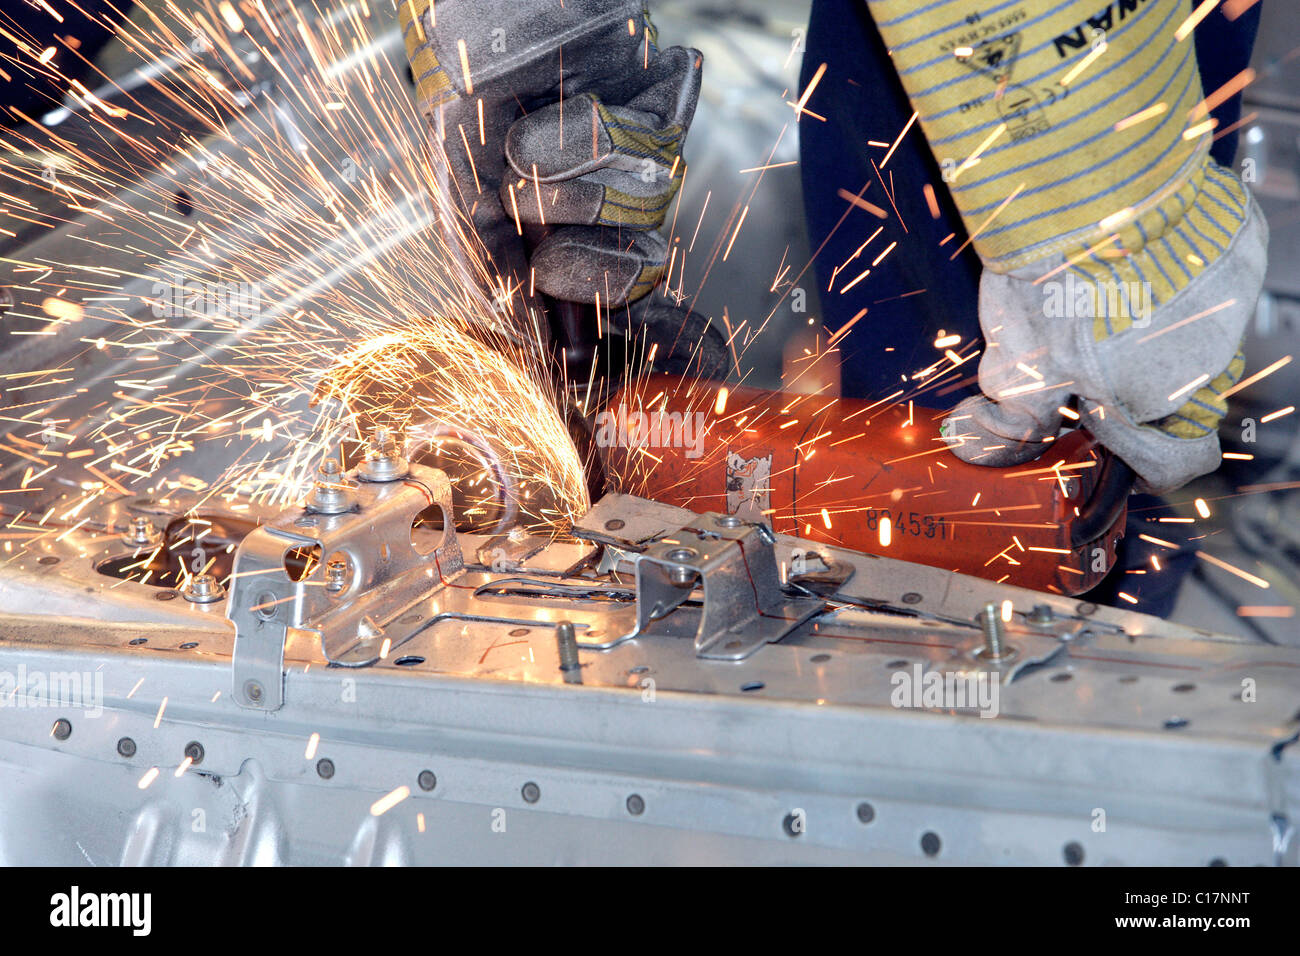 A trainee as Fertigungsmechaniker or assembly technician cutting metal with an angle grinder on the chassis of a - Stock Image